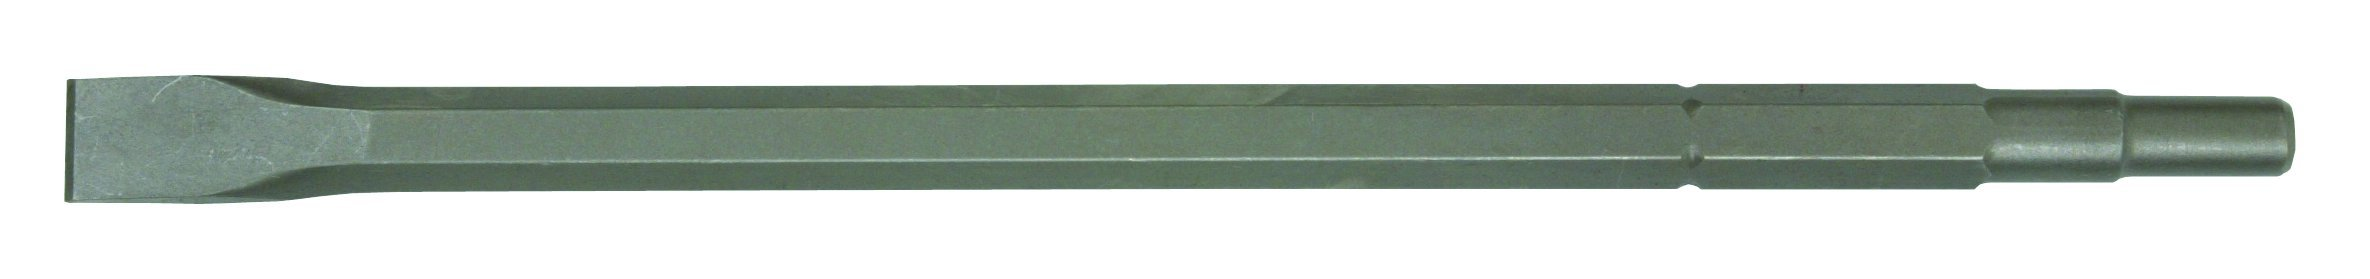 Hitachi 985382B Spline 3/4-Inch Hex 21/32-Inch Round 1-Inch by 18-Inch Narrow Chisel, 25-Pack